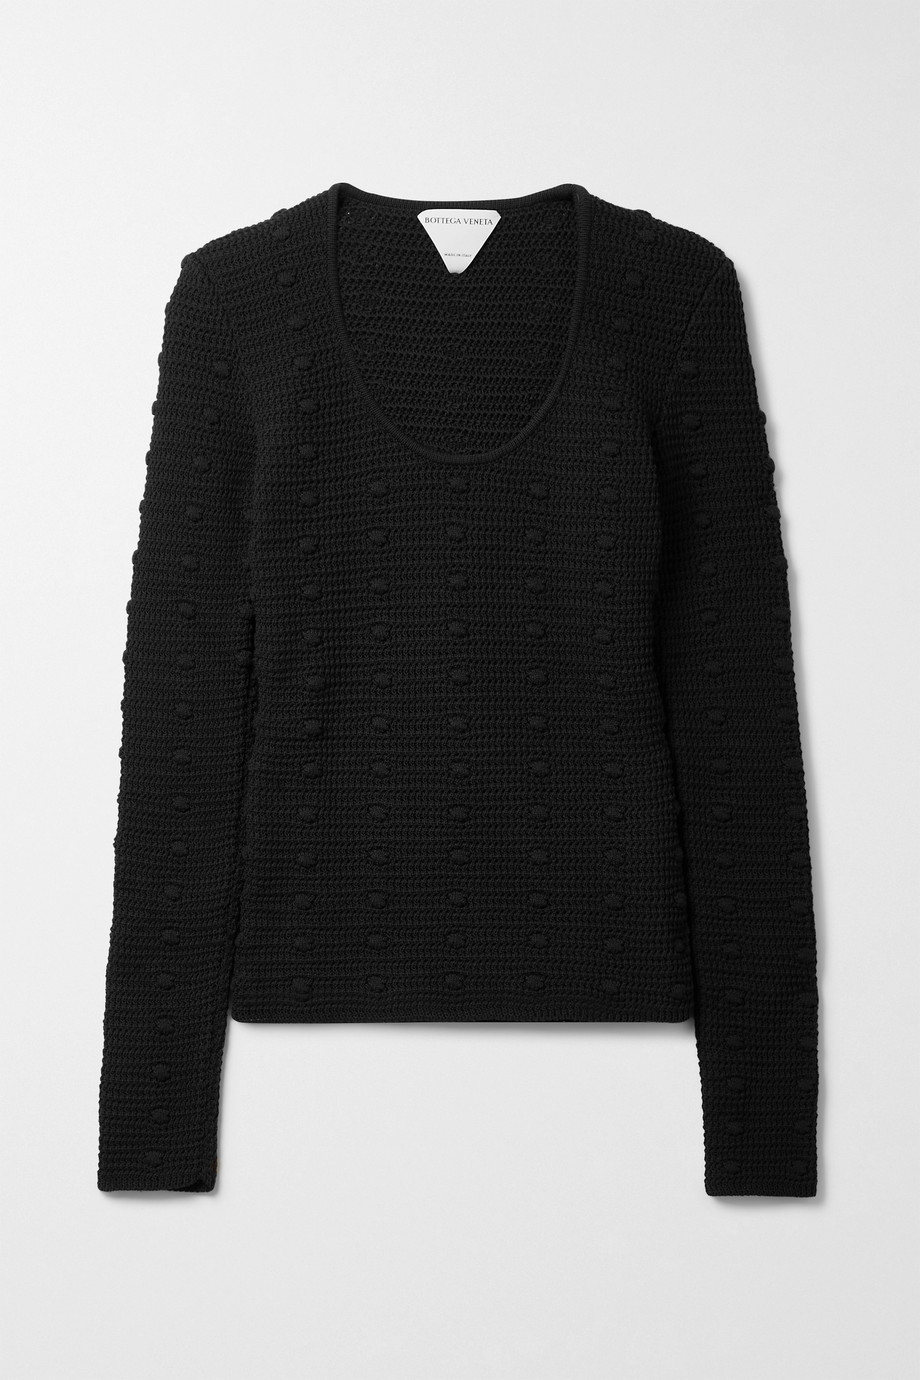 BOTTEGA VENETA Crocheted cotton sweater